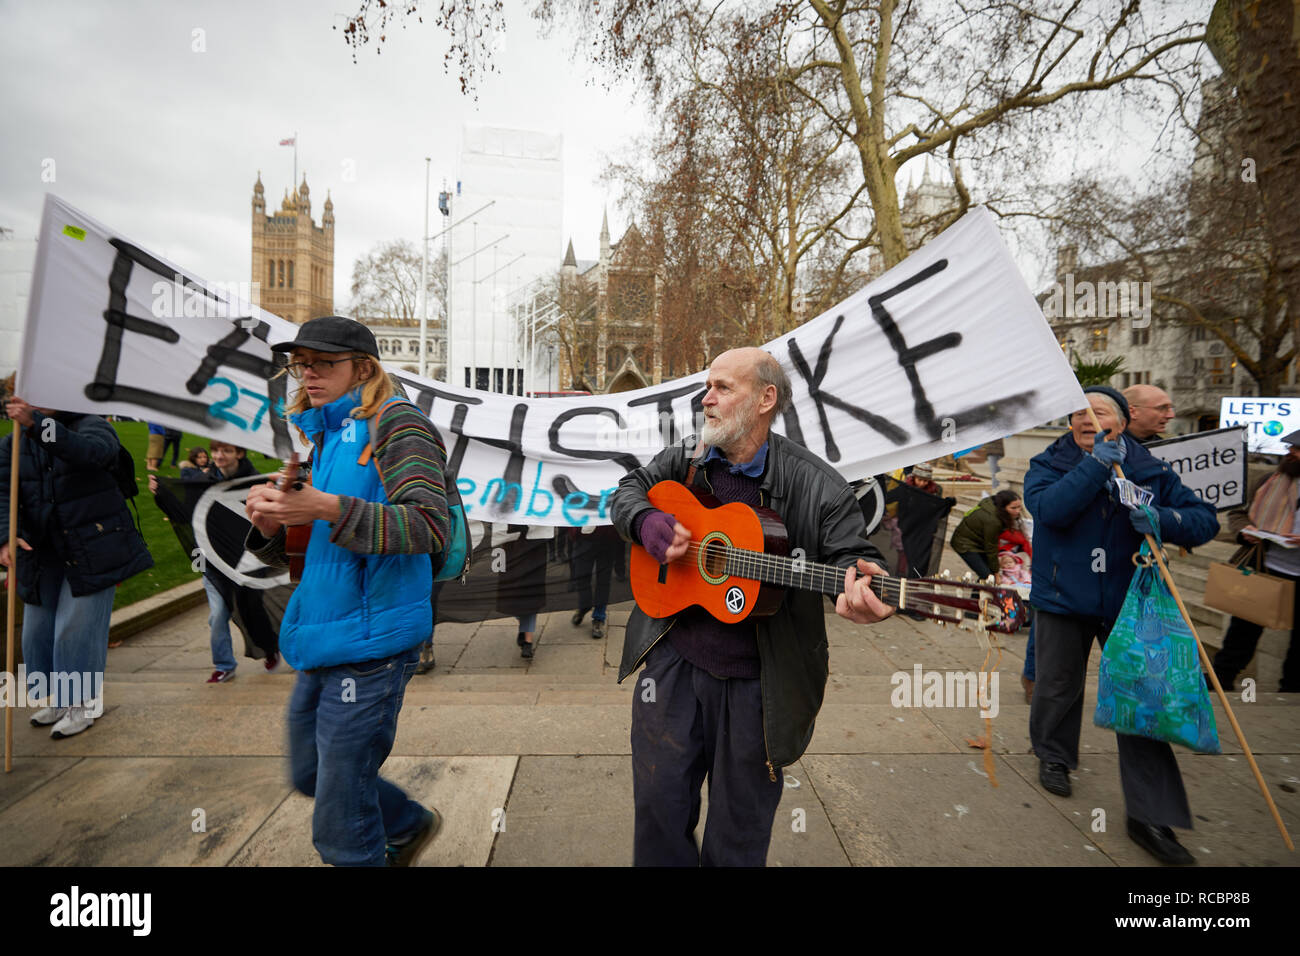 London, UK. - 15 Jan 2019: Musicians lead a march by supporters of Earth Strike, a grassroots enviromental activisit movement, to kickoff a campaign for a General Stike day on 27 September. Credit: Kevin J. Frost/Alamy Live News Stock Photo